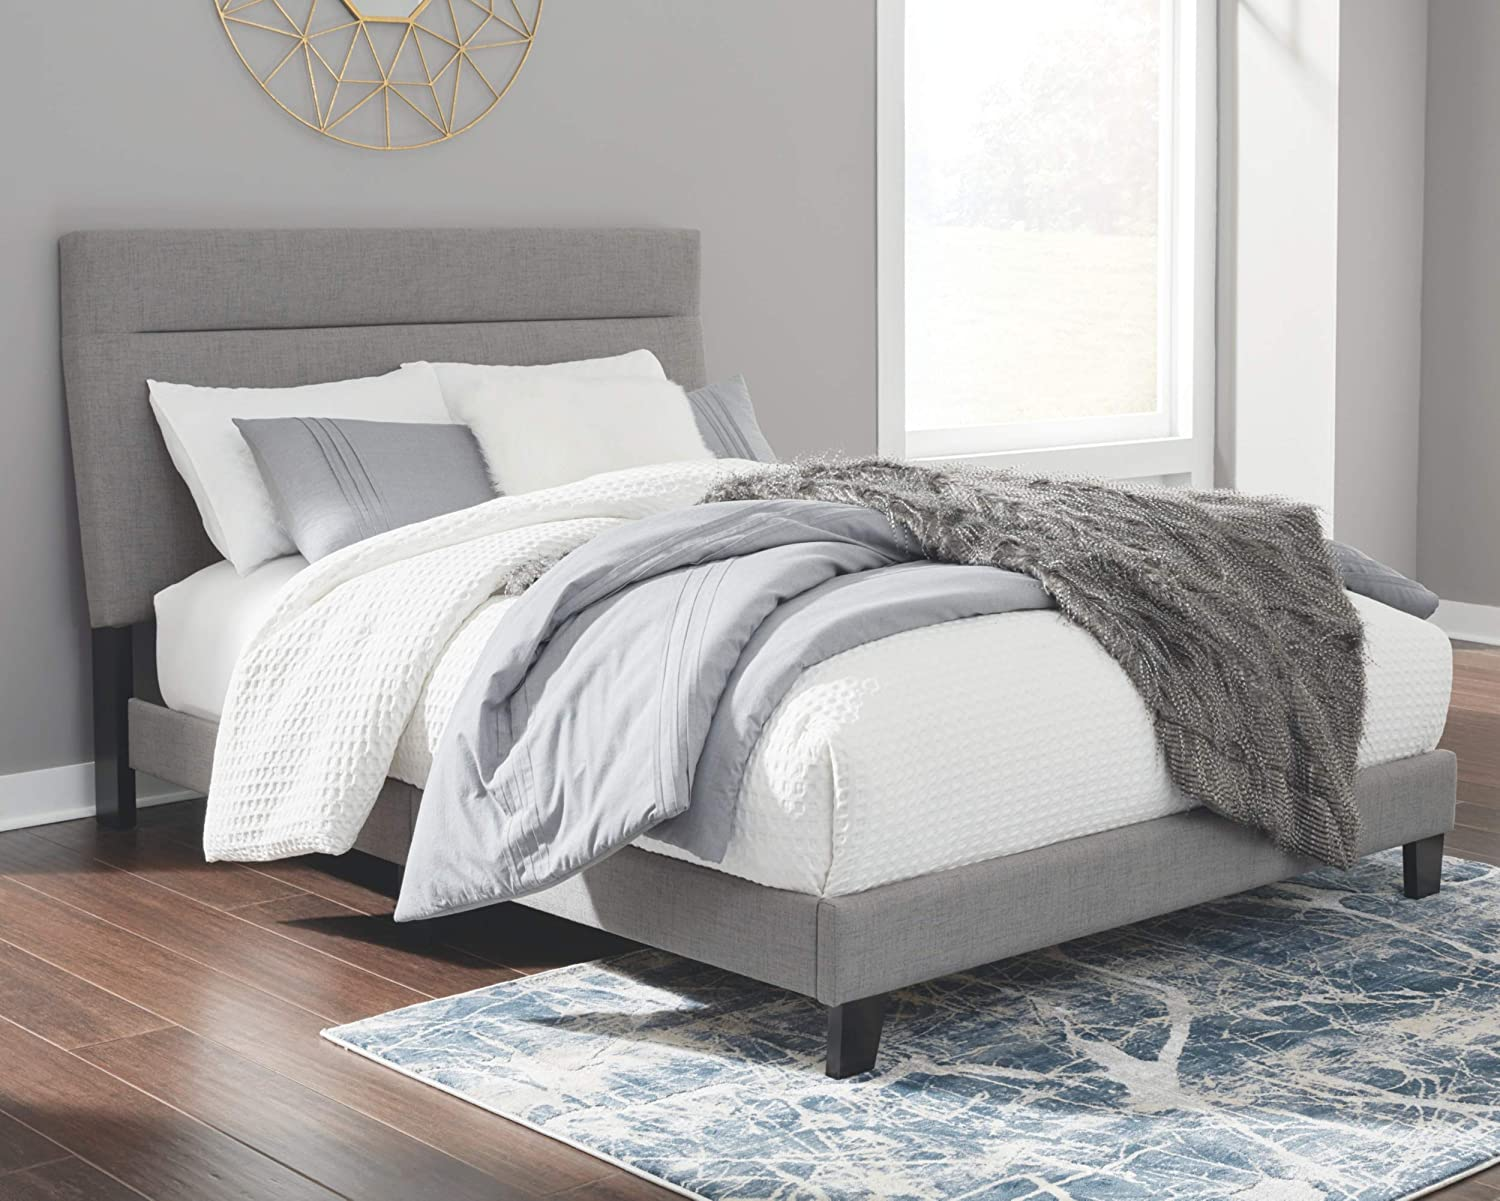 Signature Design by Ashley Adelloni Adjustable Bed, King, Solid Gray